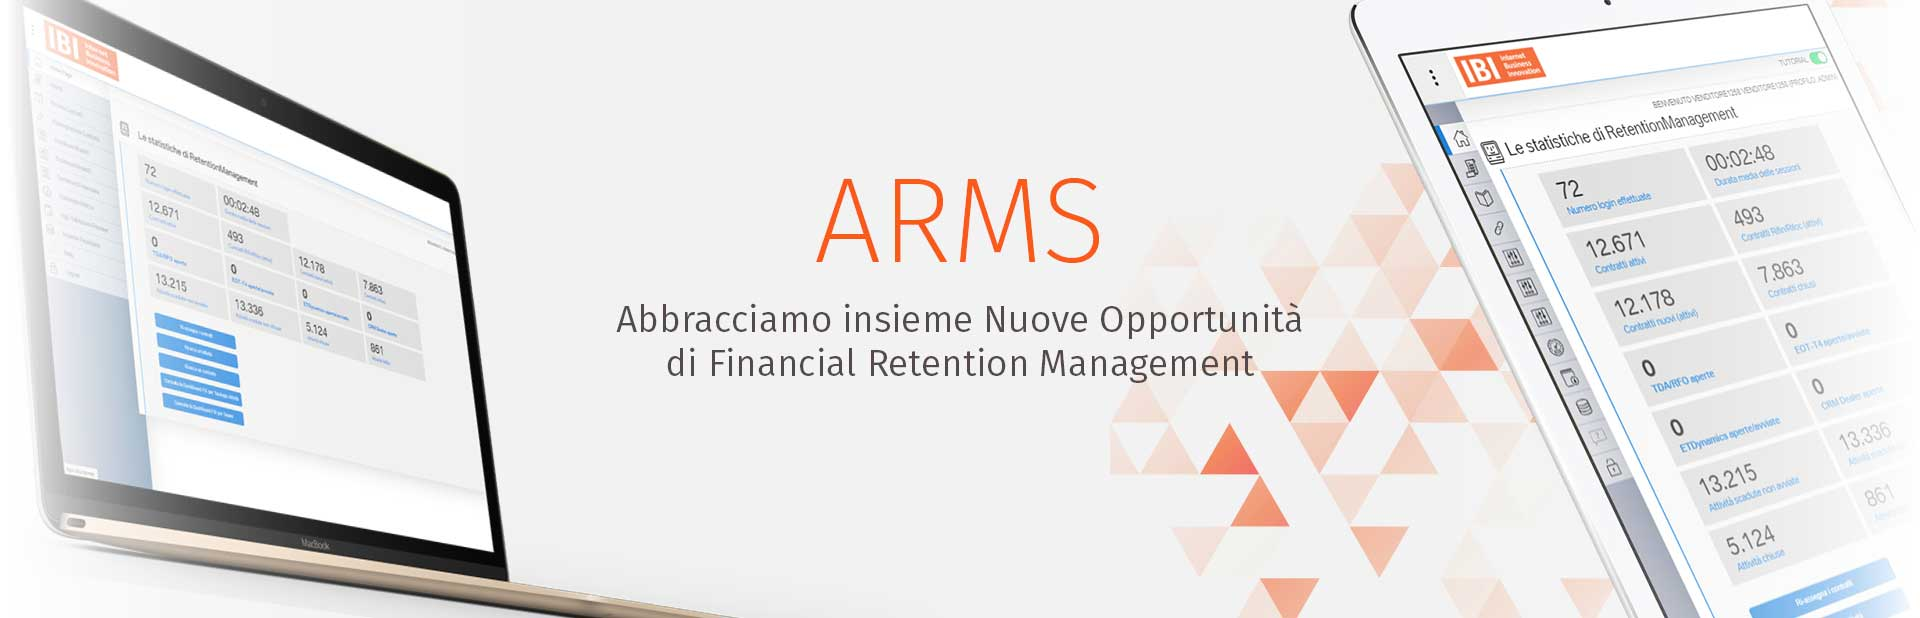 IBI Internet Business Innovation - ARMS Retention Management